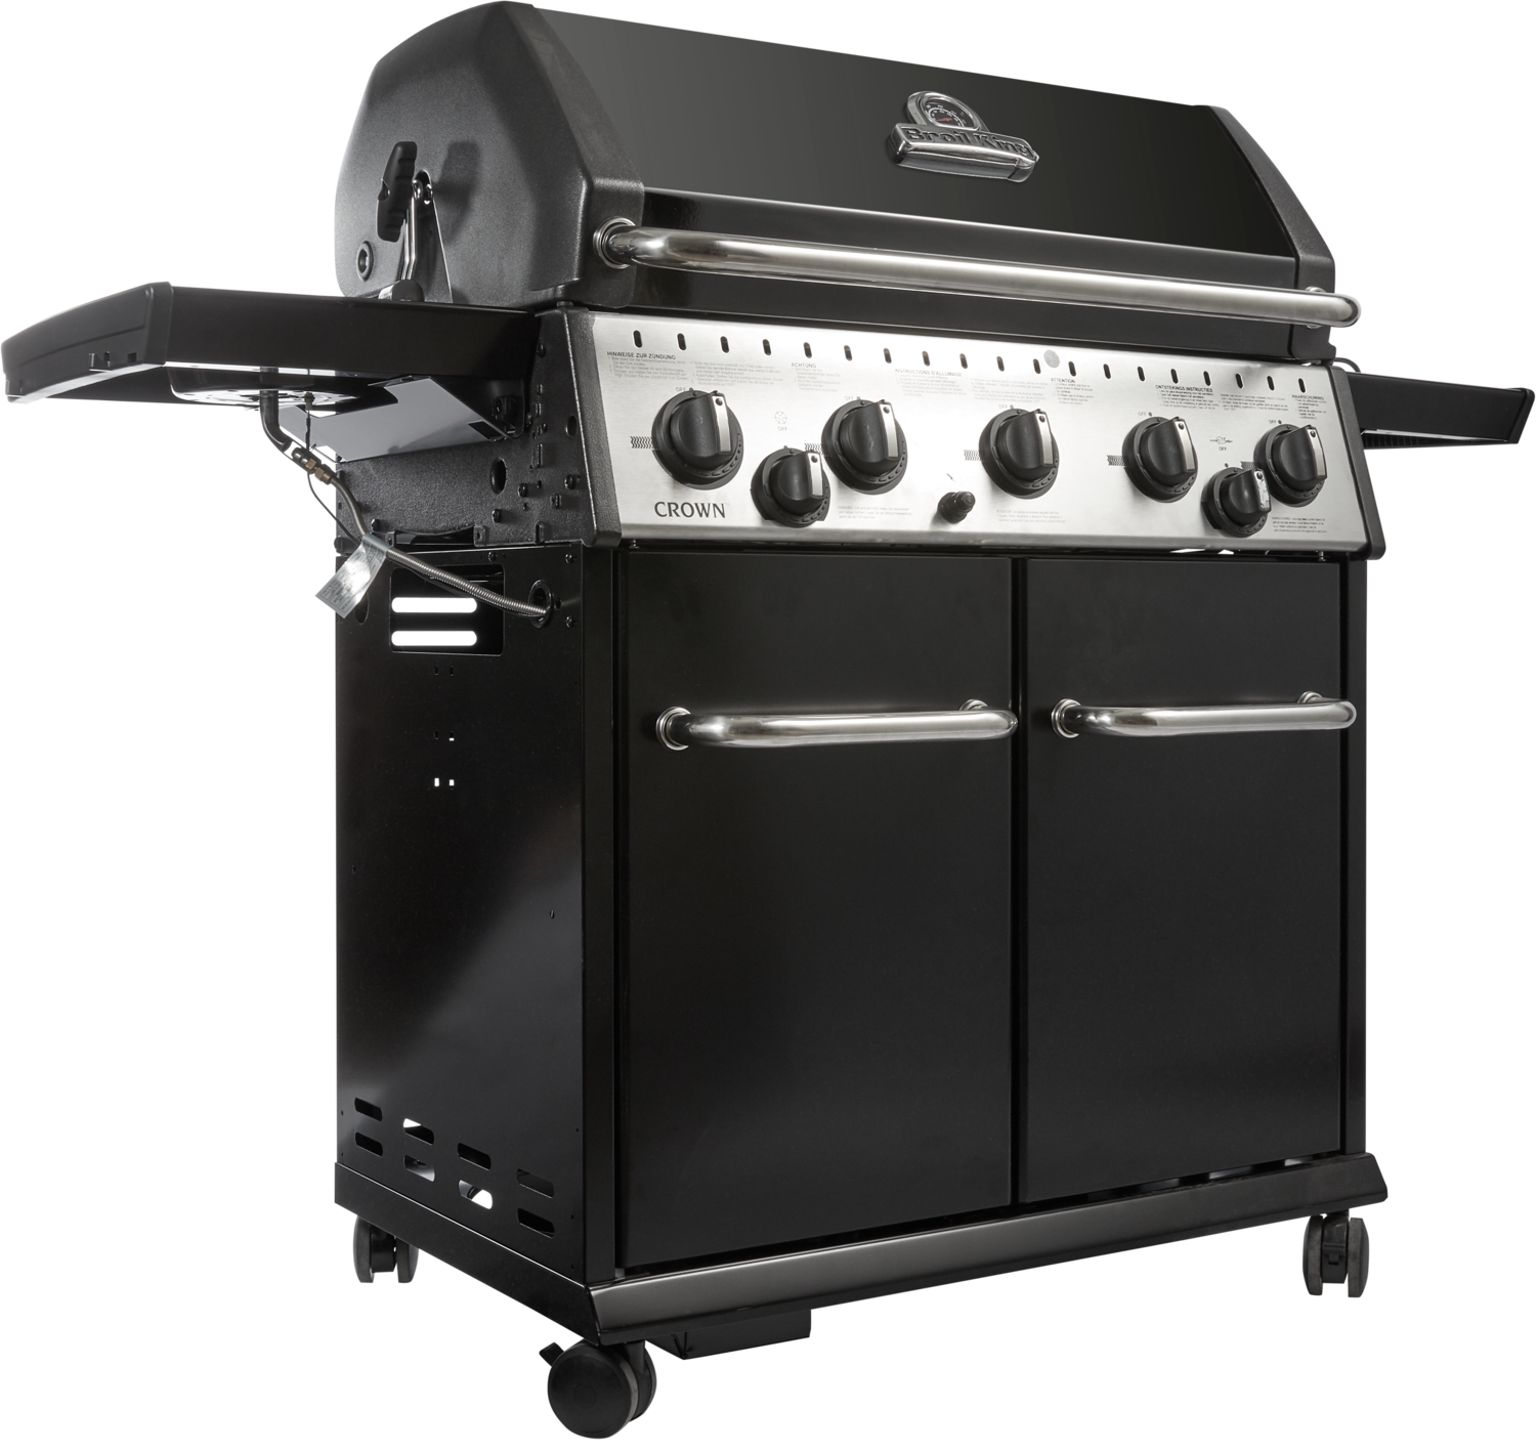 Image of BROIL KING Gasgrill CROWN 590